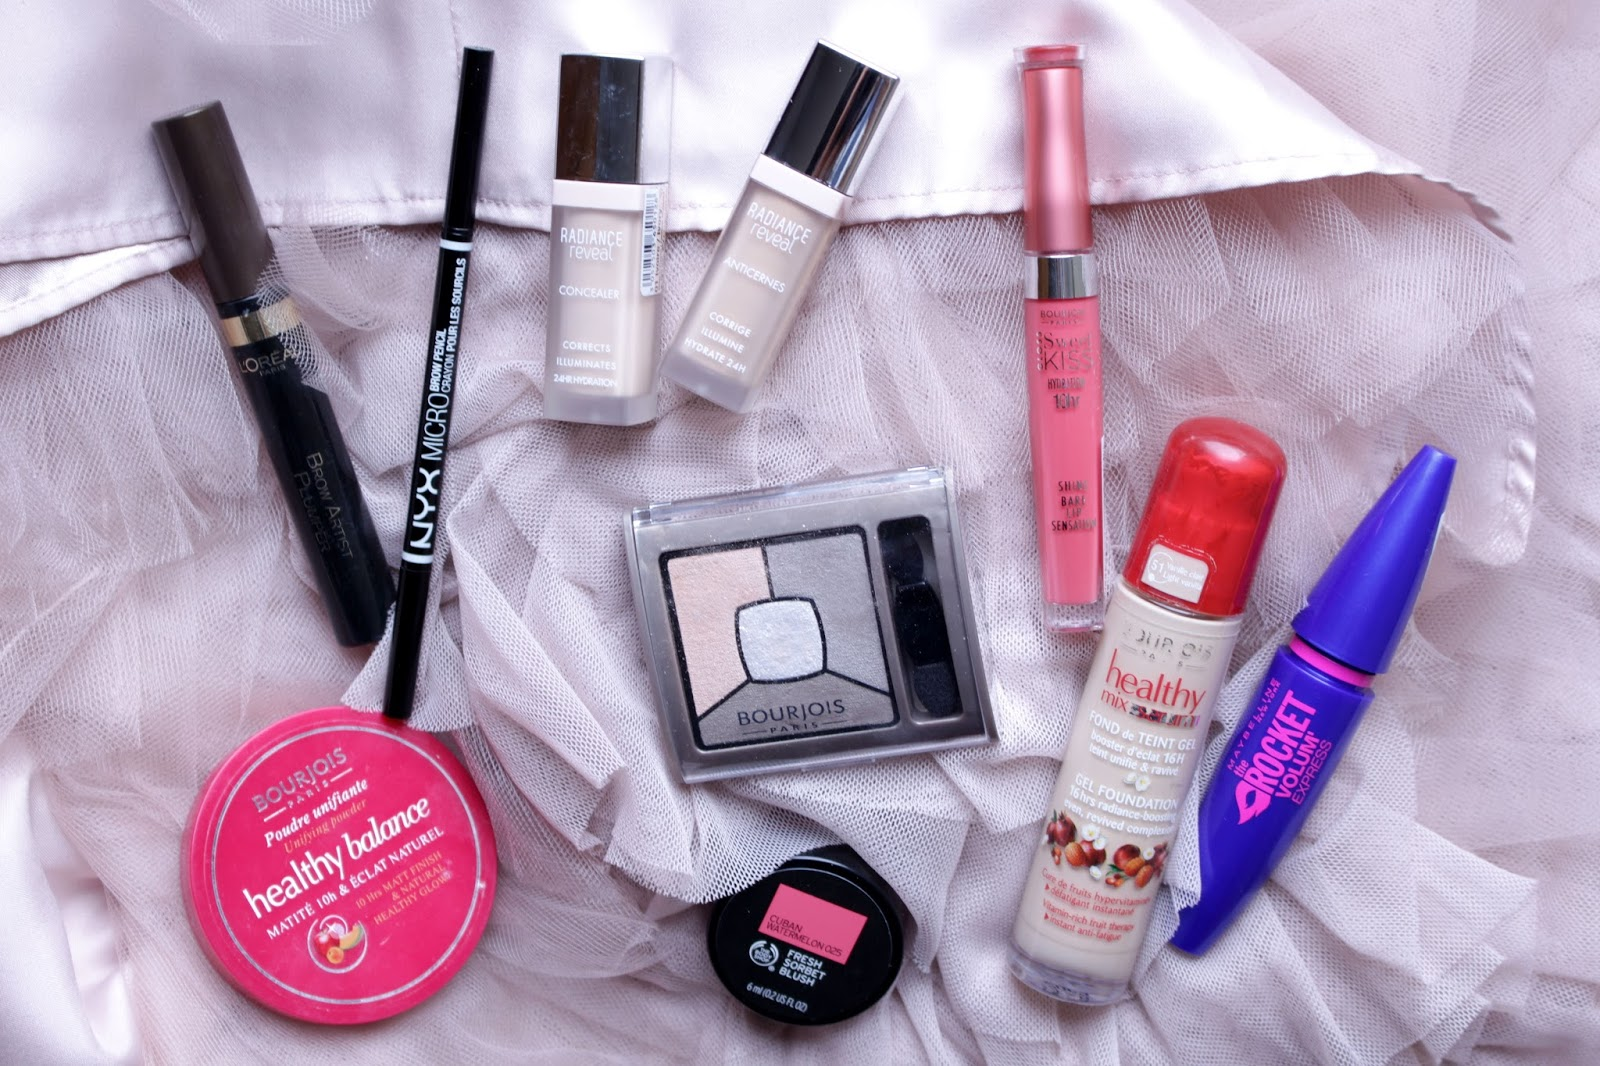 Drugstore make-up